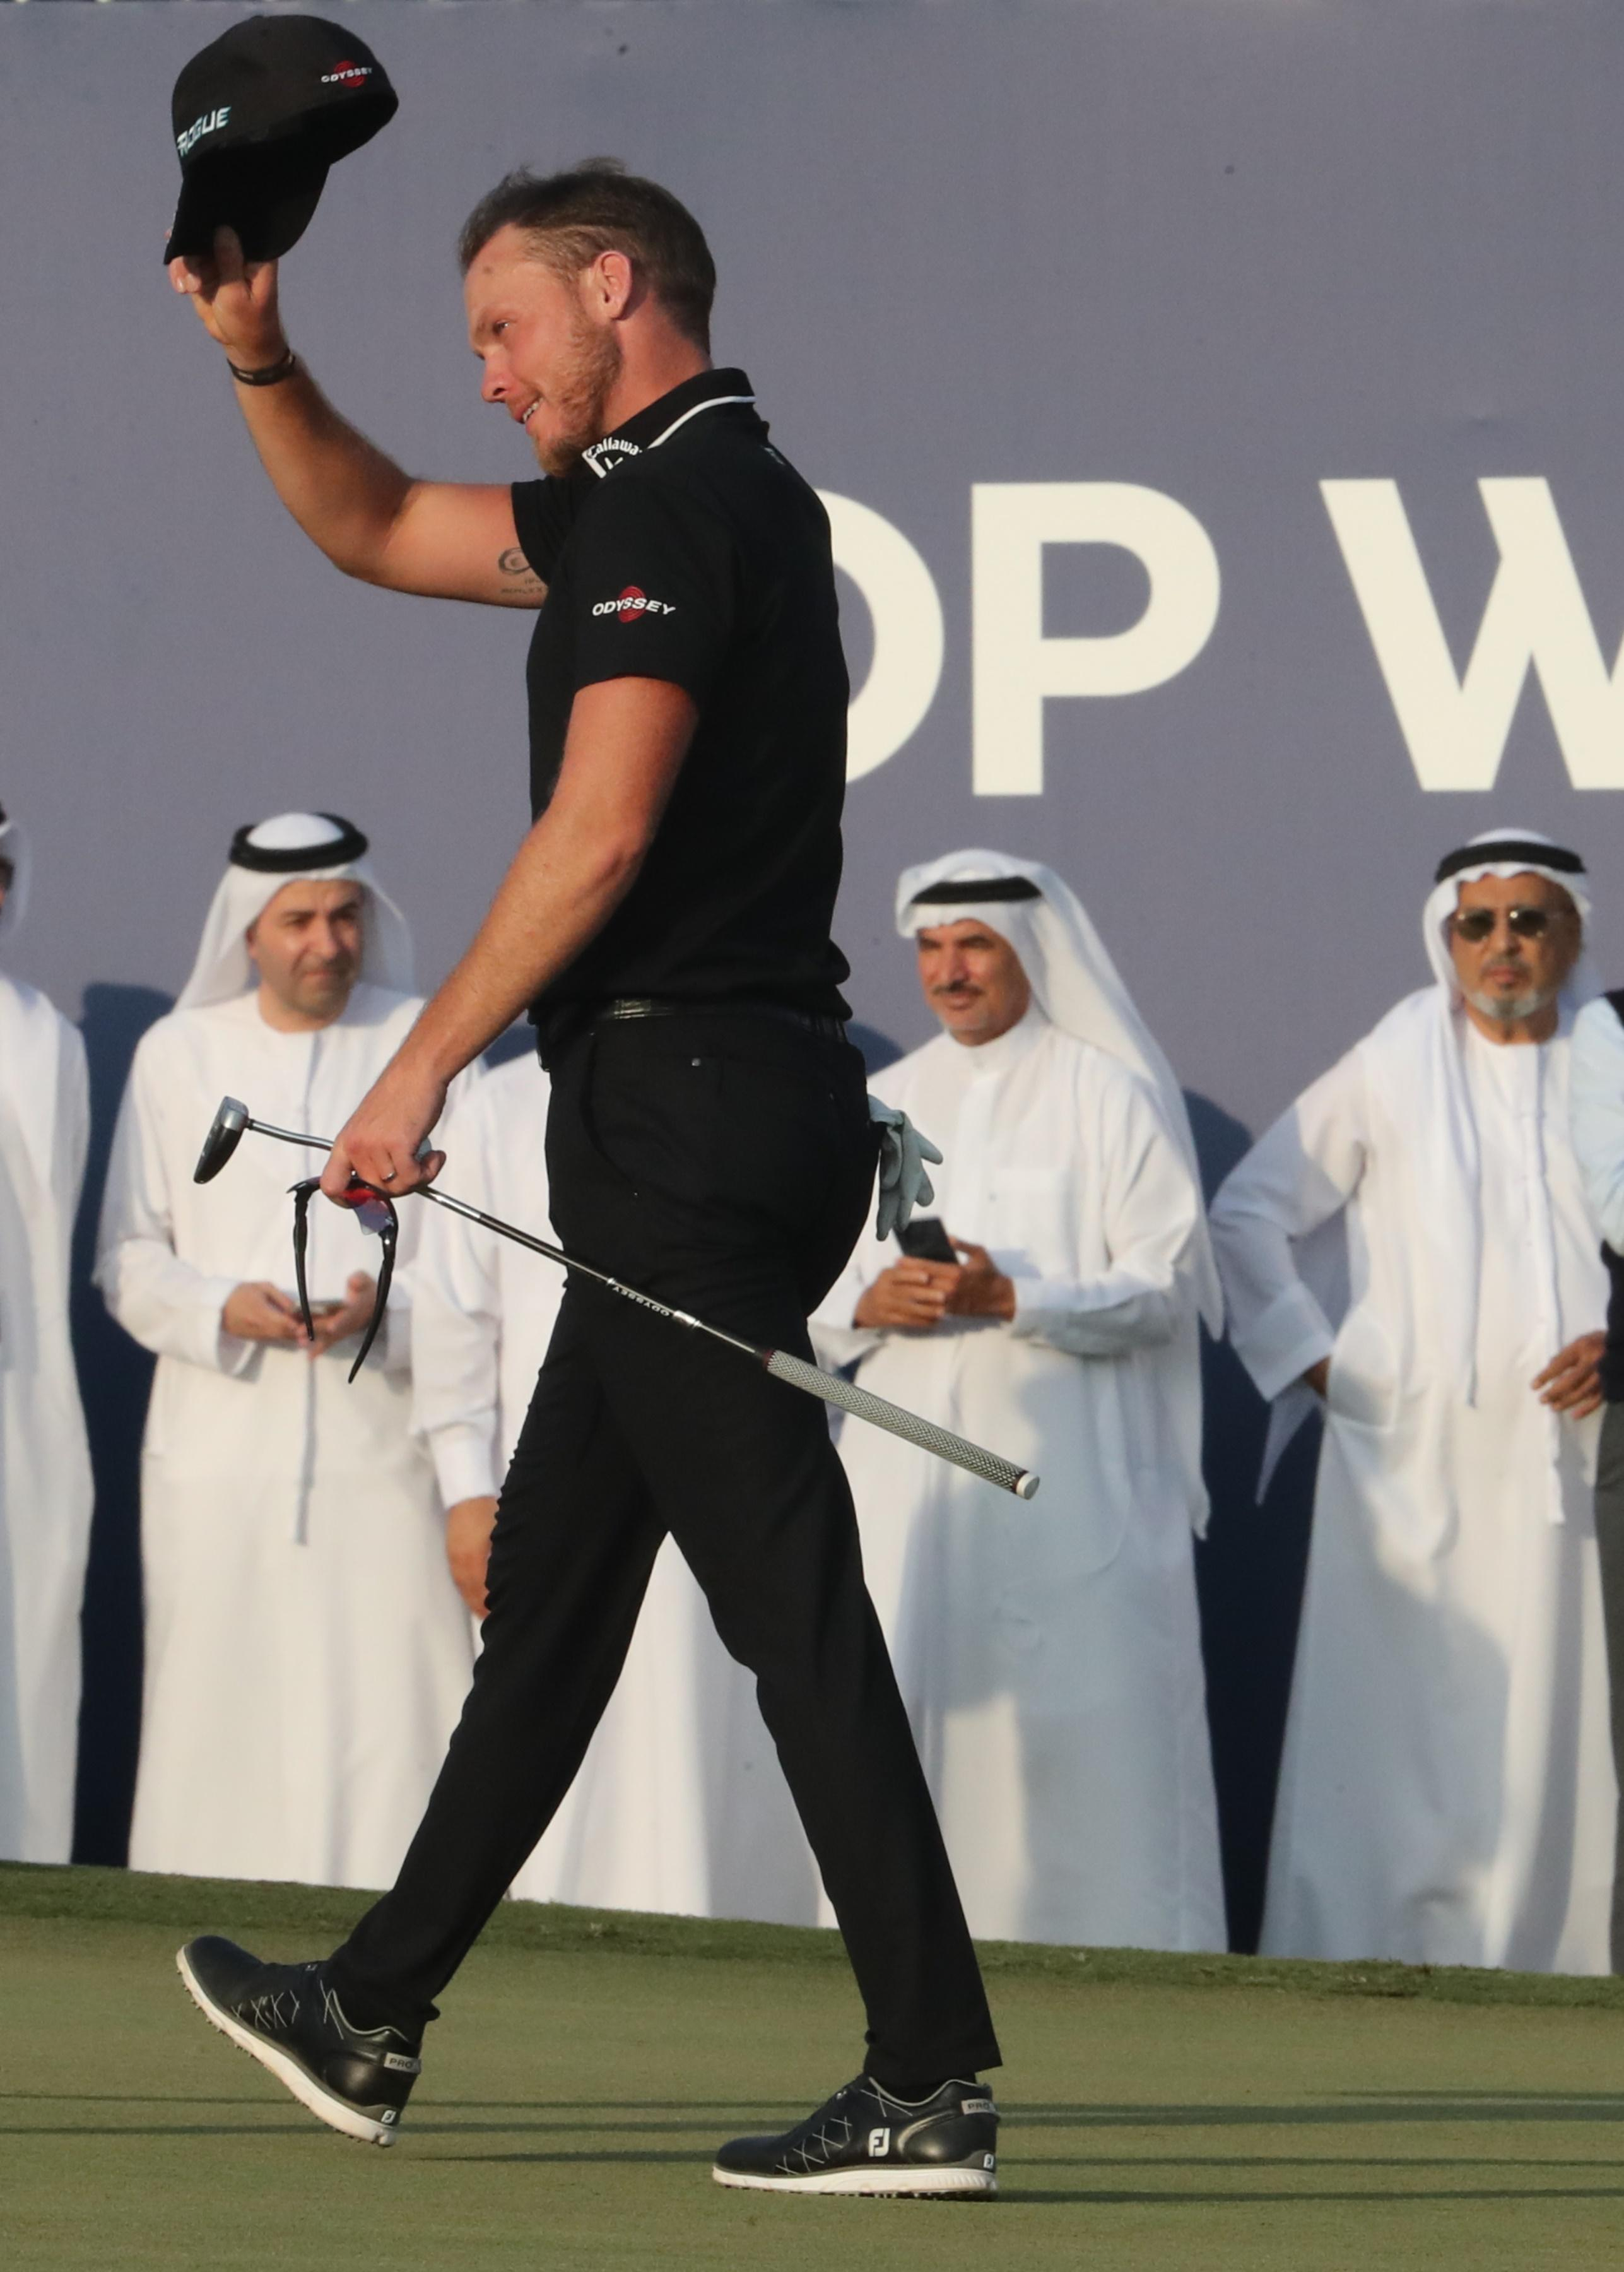 He has pocketed just over £1m for winning in Dubai